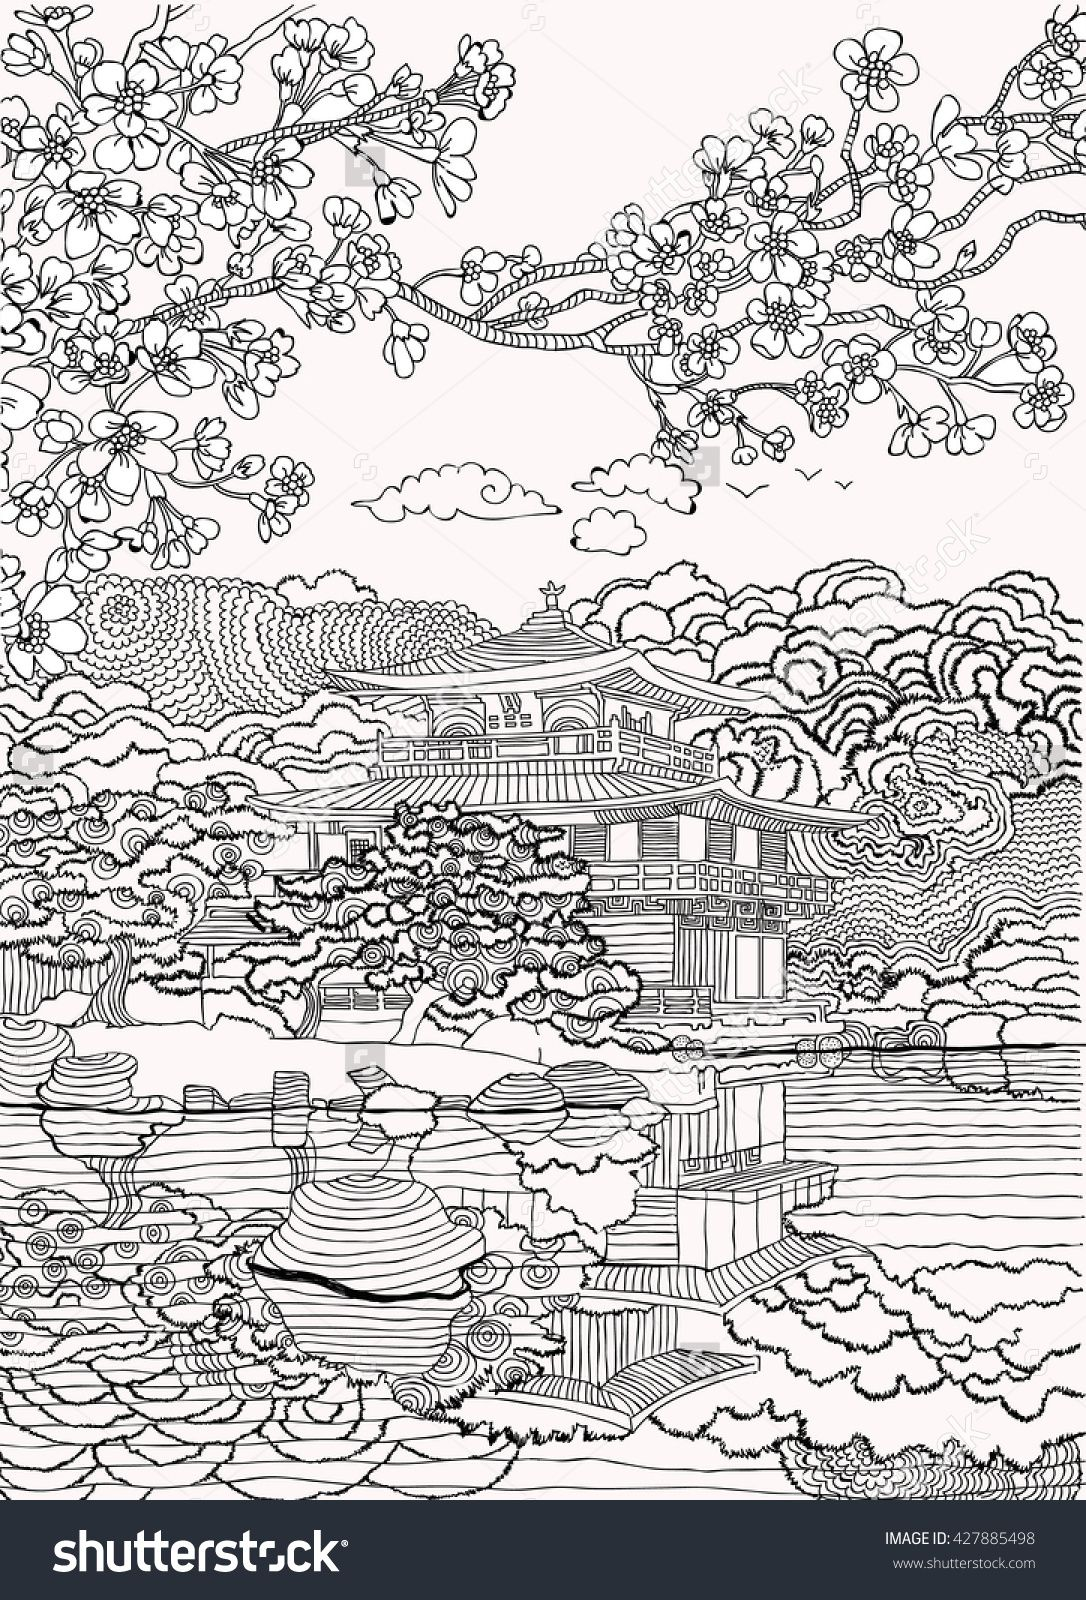 Japan coloring pages Shutterstock